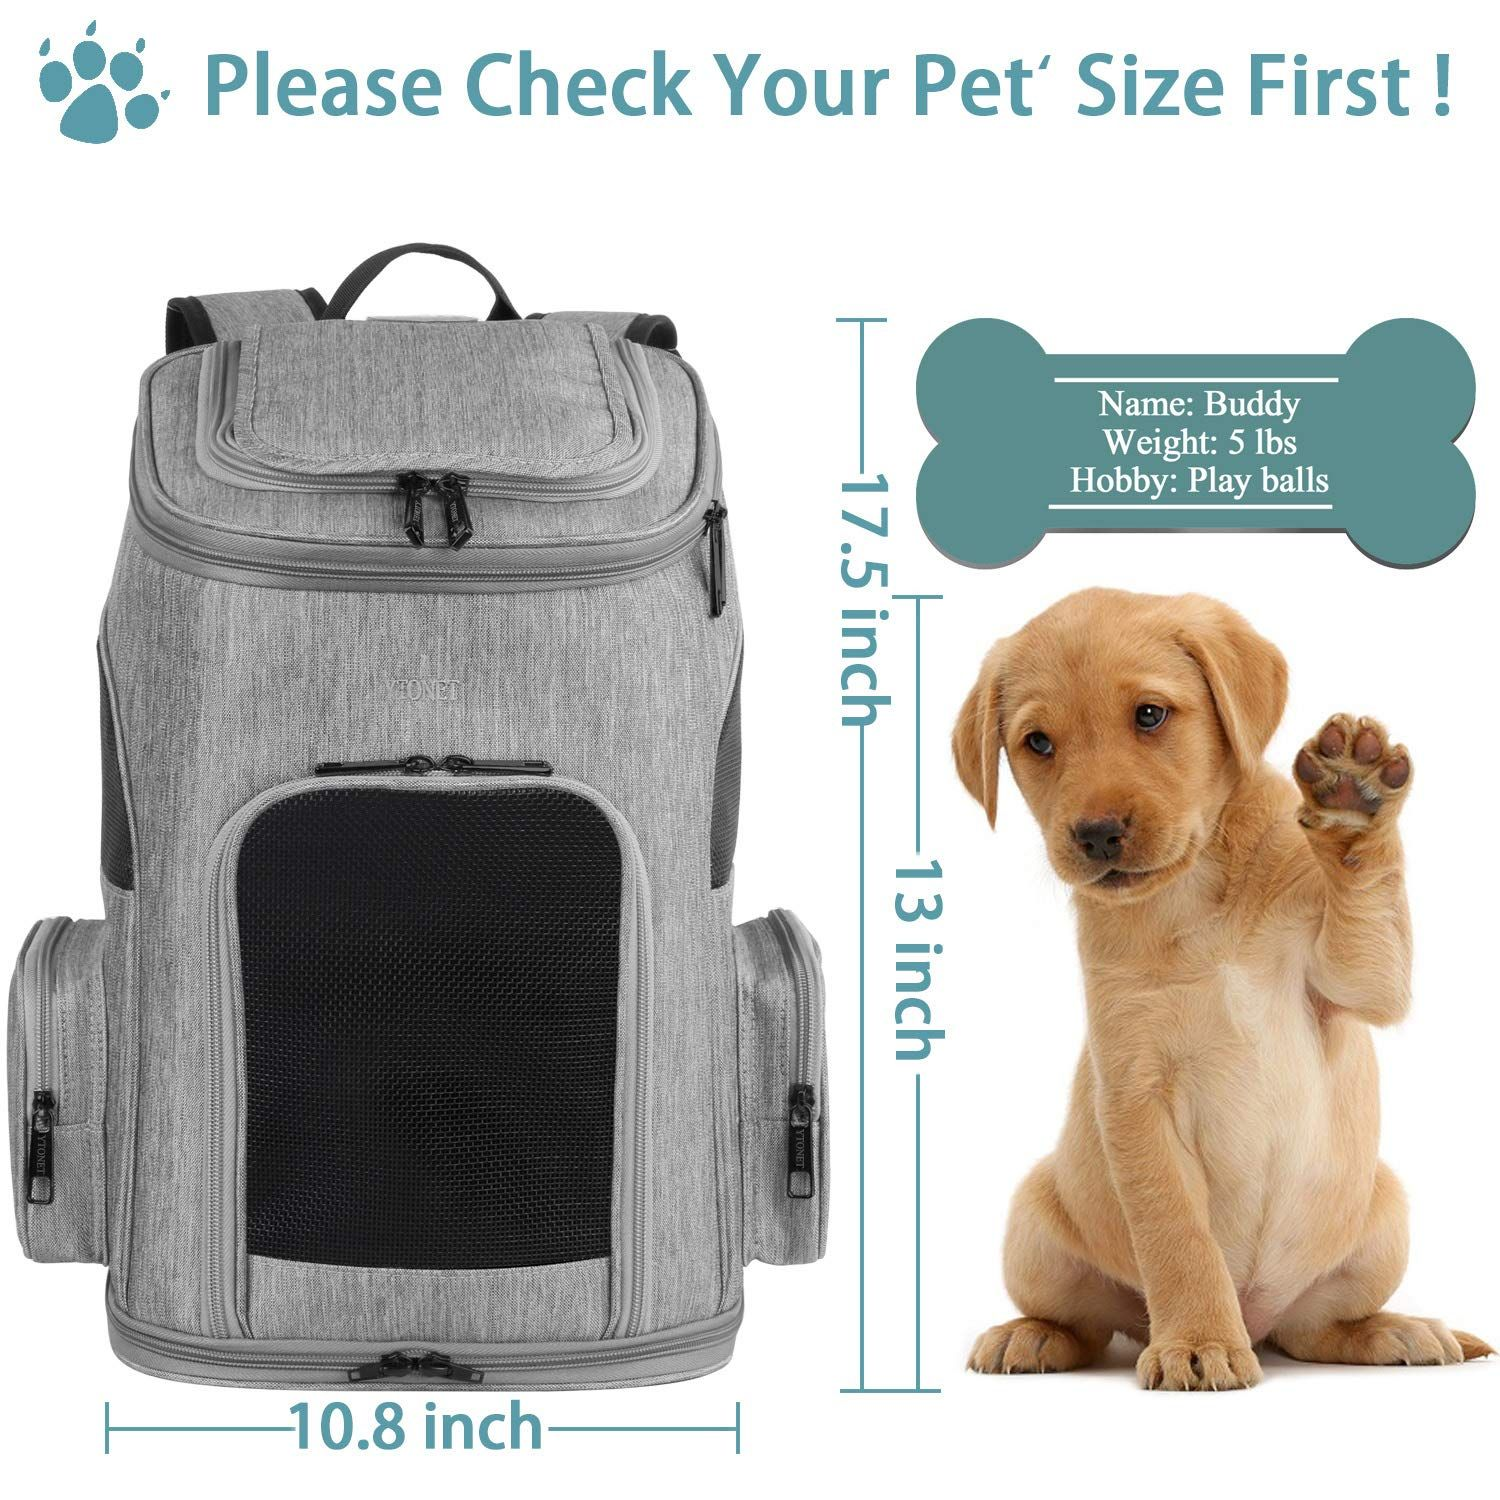 Ytonet Dog Backpack Pet Carrier Bag With Mesh For Small Dogs Cats Puppies Comfort Cat Backpack Bag Airline Approved Fo Pet Carrier Bag Dog Backpack Dog Carrier